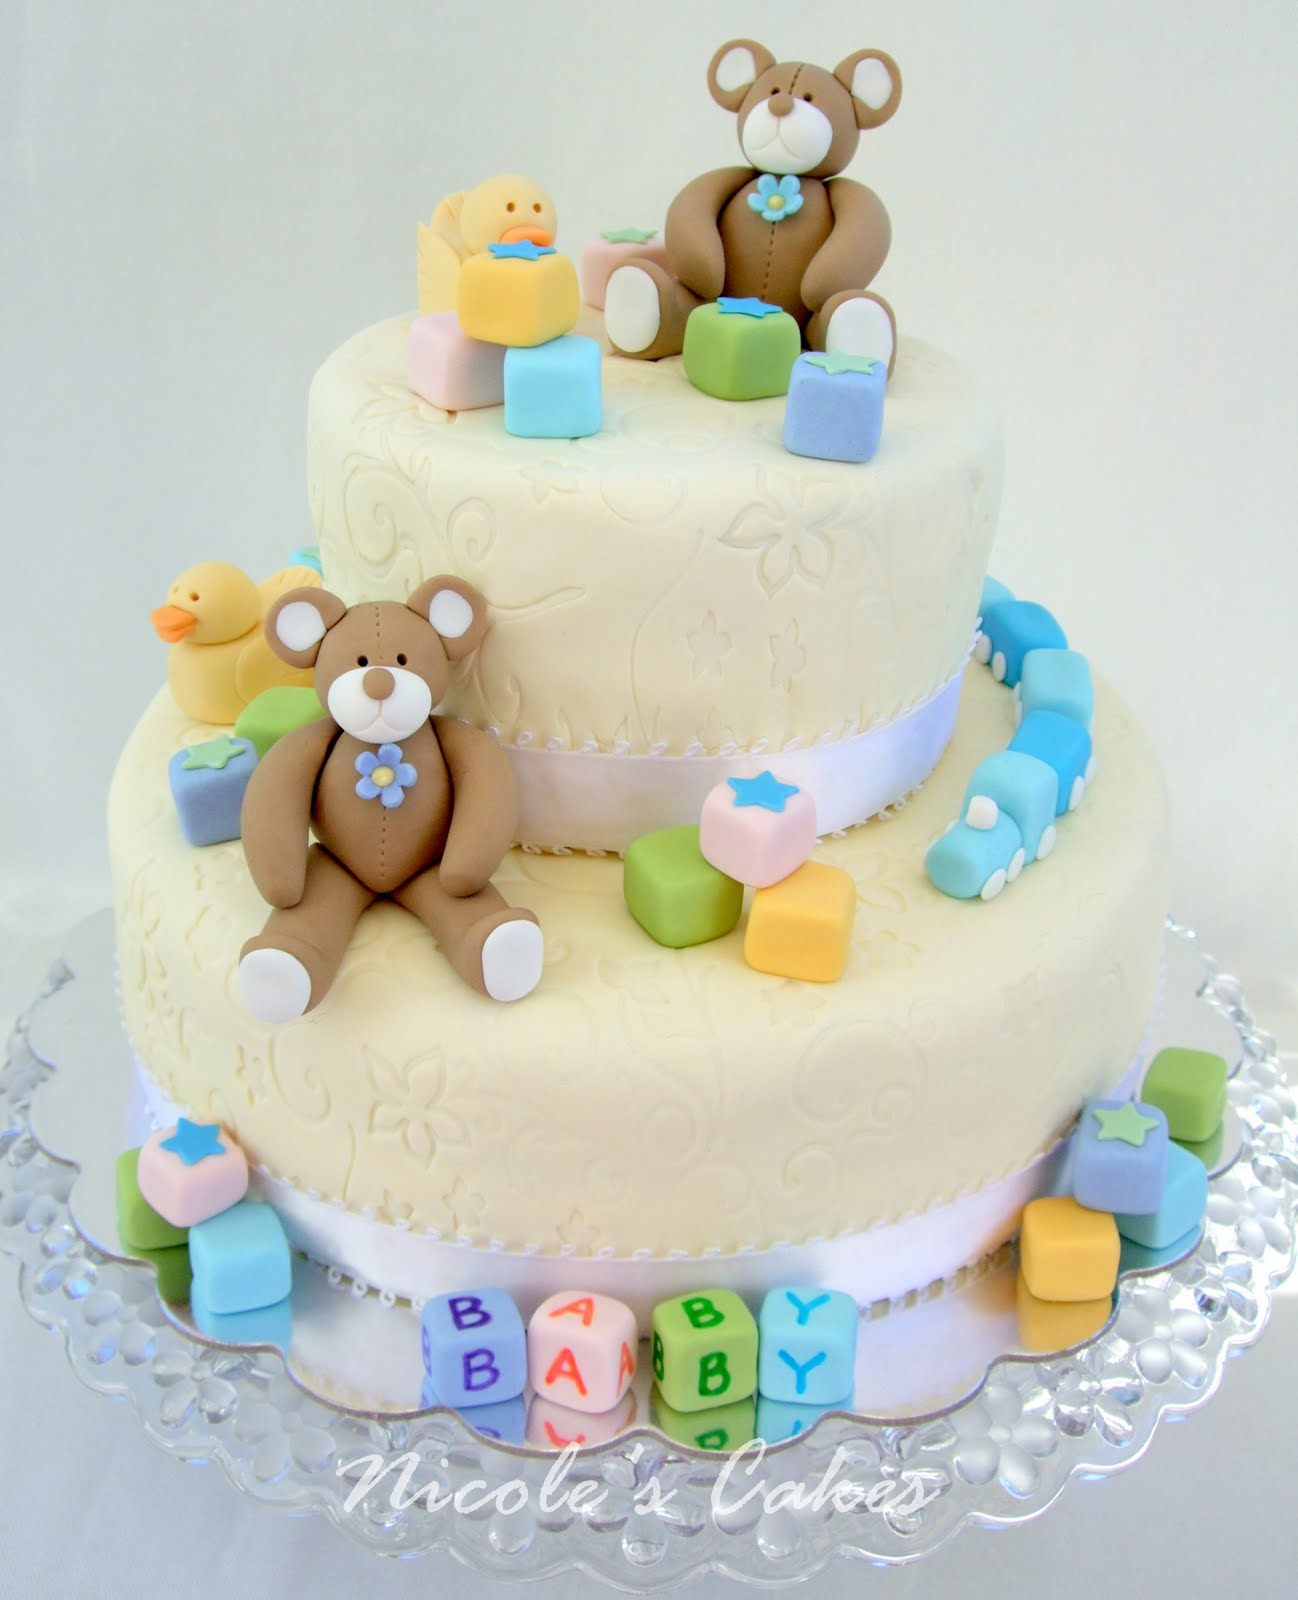 theme for this shower cake was baby toys to welcome the new baby